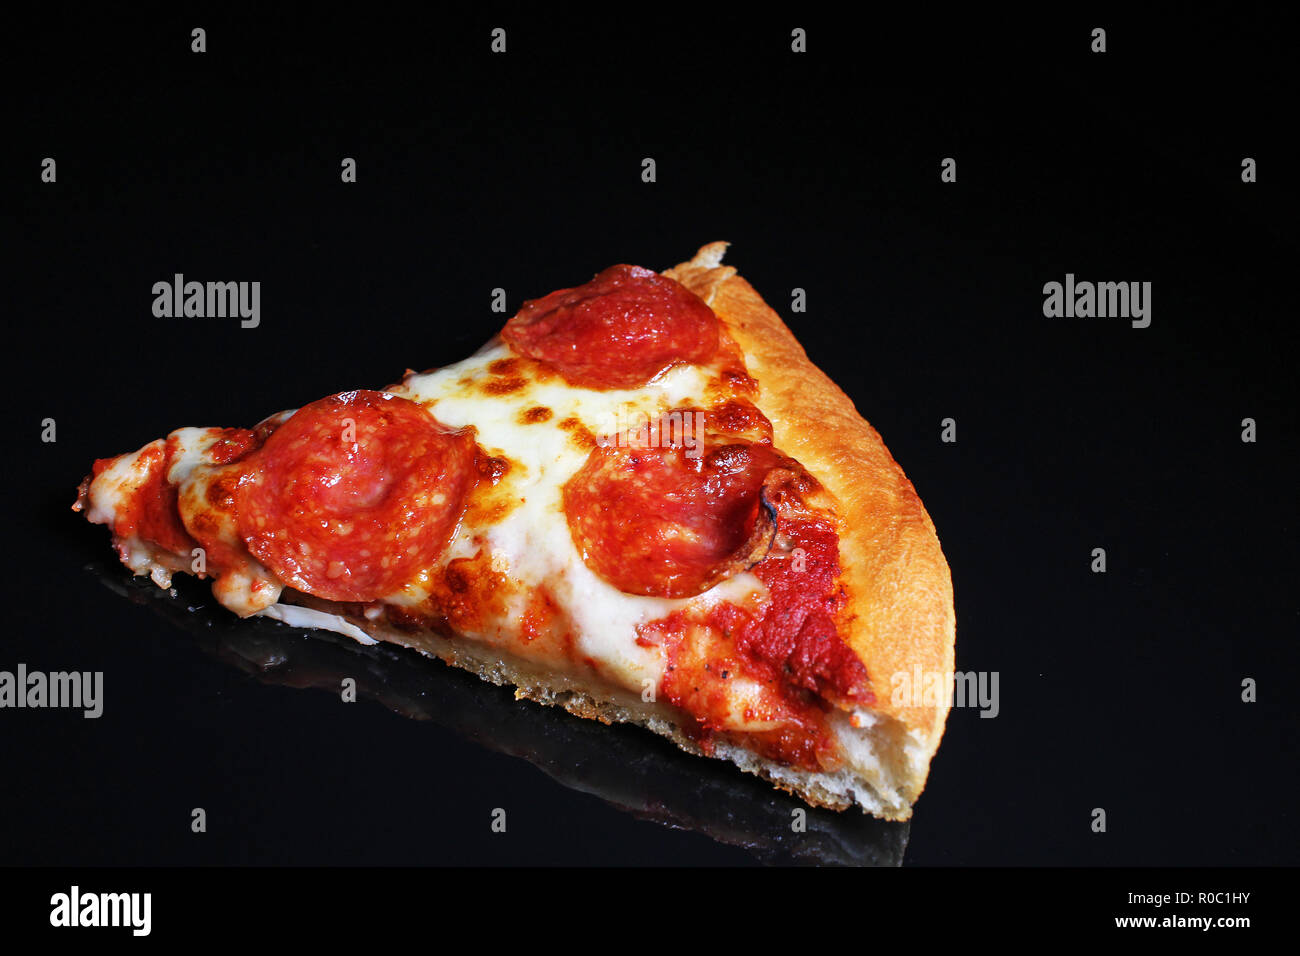 Pizza sausage american salami cheese slice slices pizza delivery - Stock Image